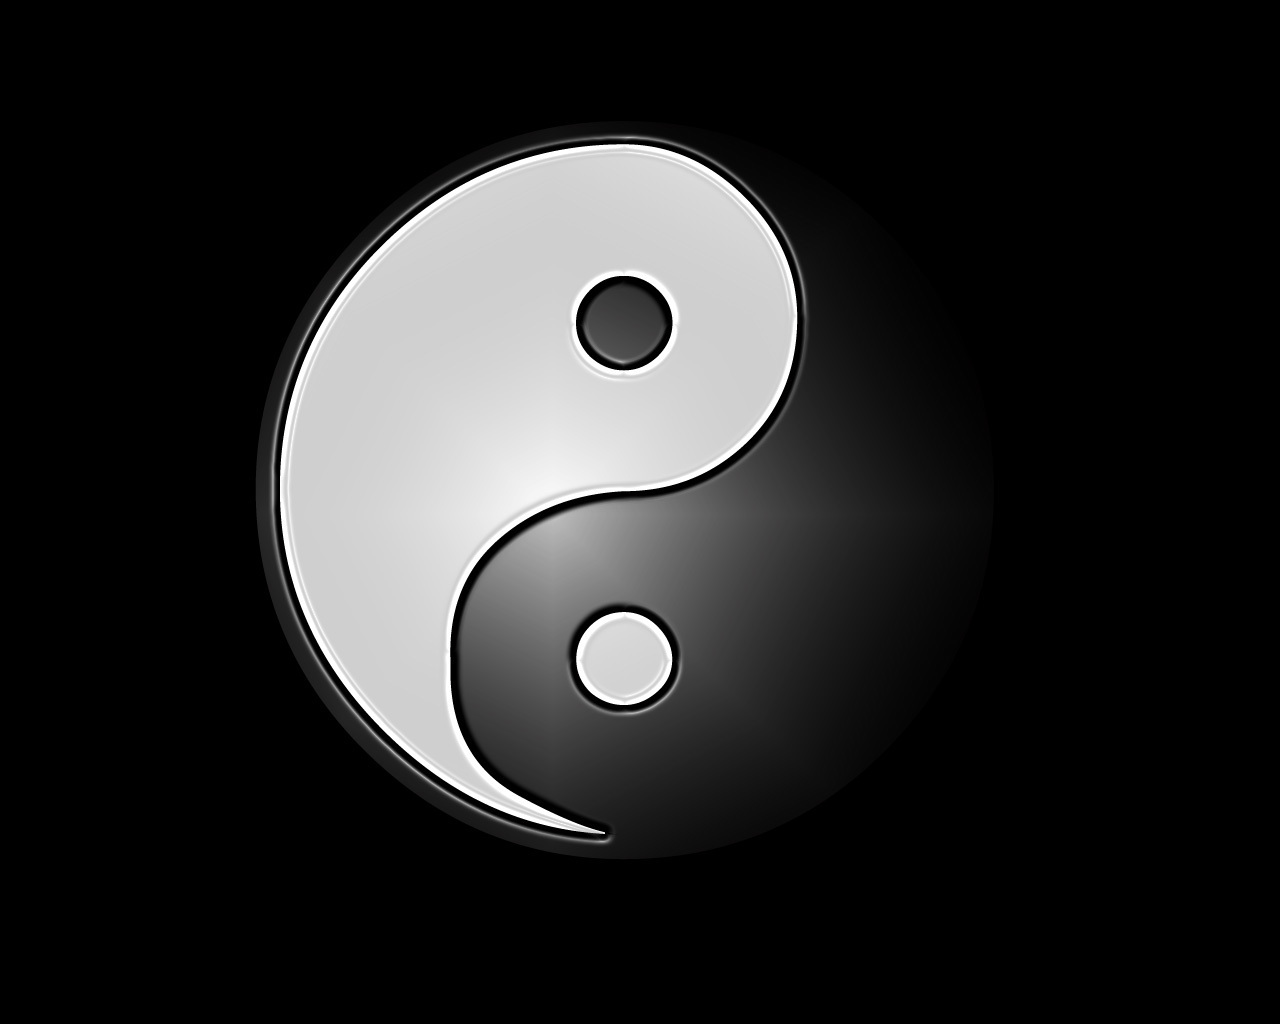 akimamg images yin and yang hd wallpaper and background